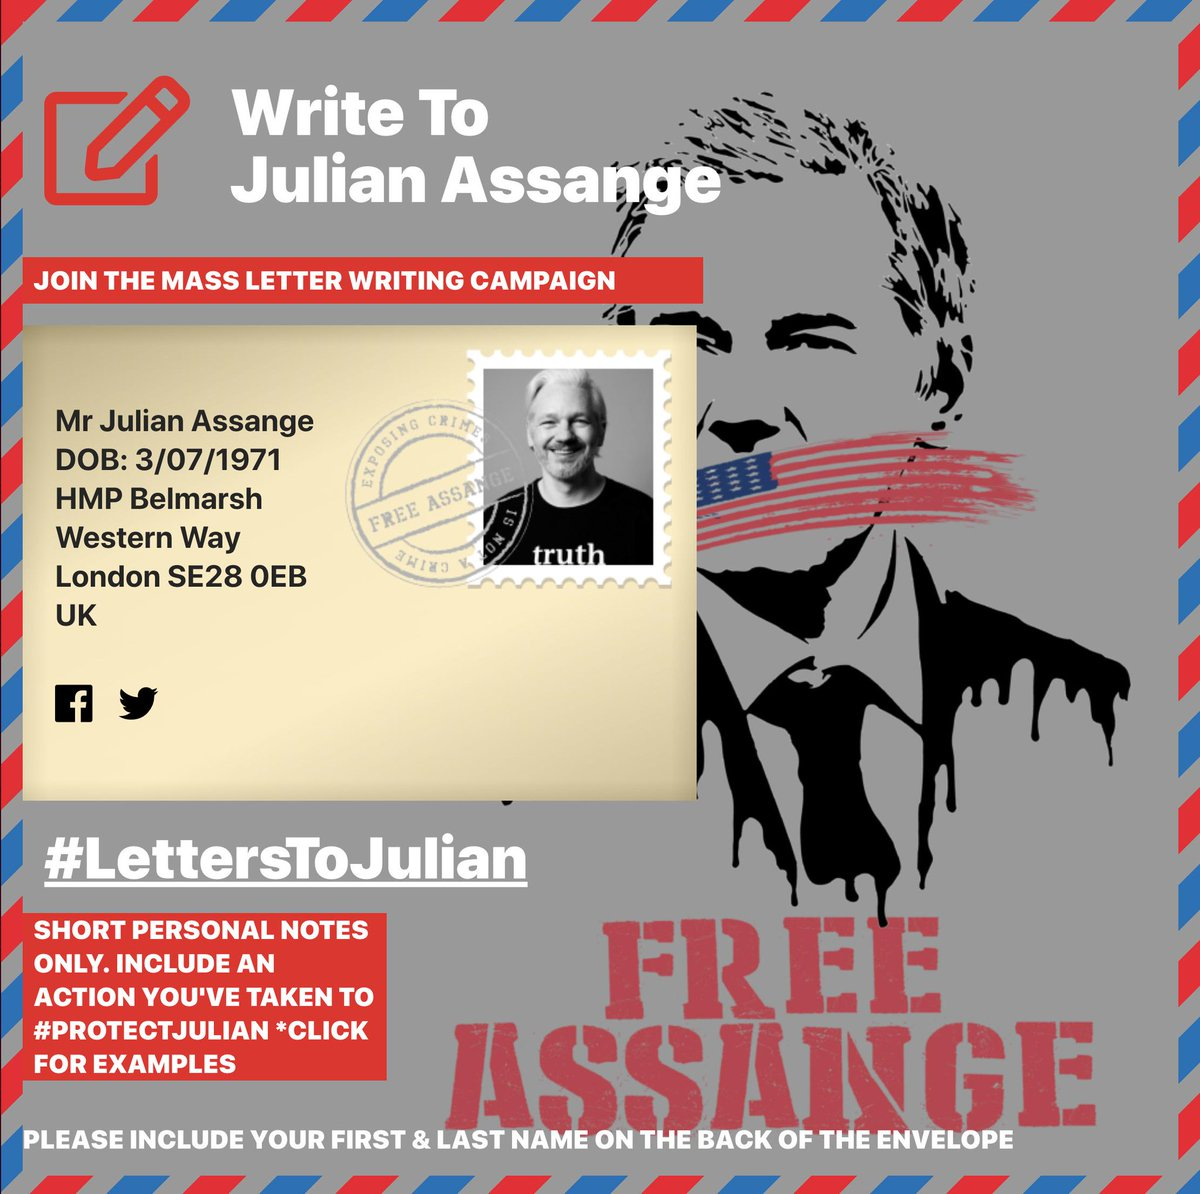 Supporters, Artists, and photographers - you may send paper items to Julian Assange including letters, paper drawings and photos. Share your artwork with #WikiLeaksArt and share letters with #LettersToJulian @wikileaks See https://t.co/jO5sqooHz5